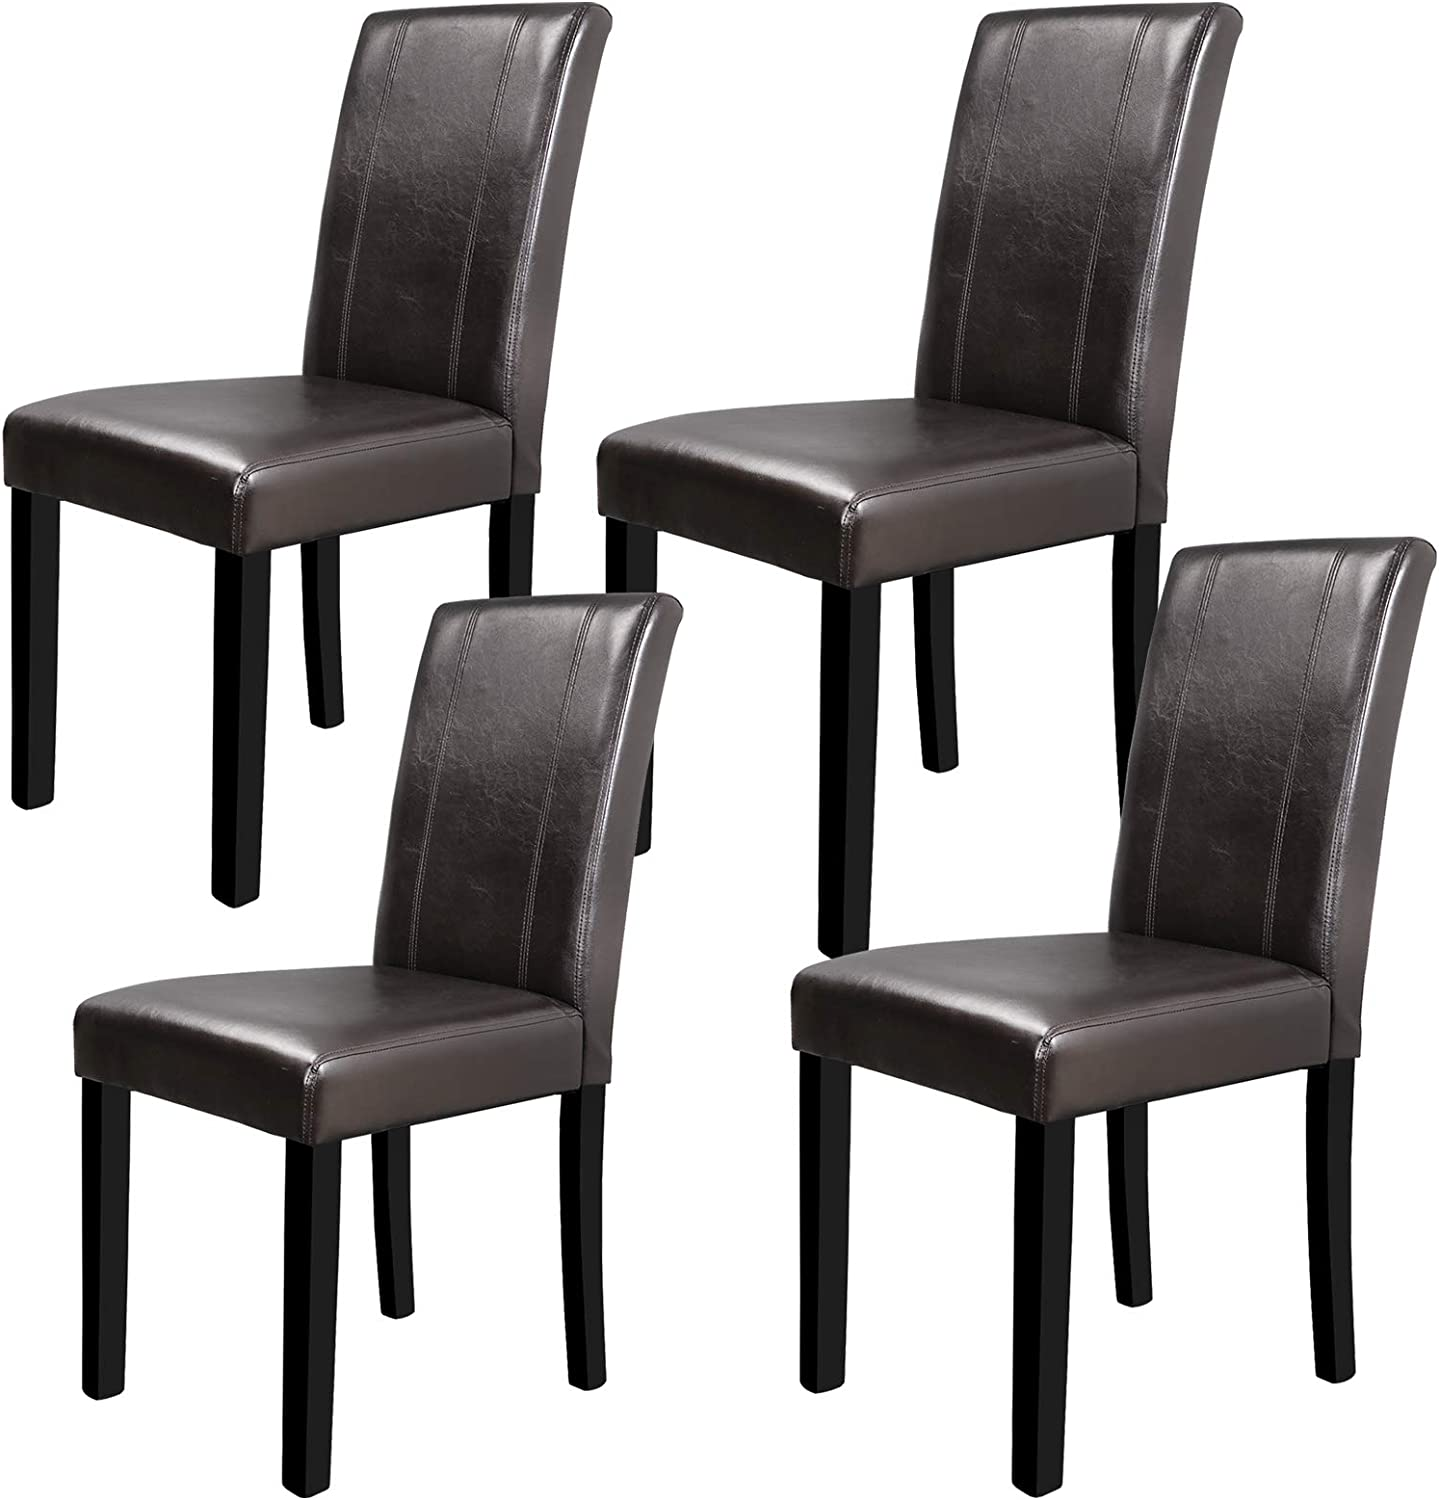 SUPER DEAL Solid Wood Leatherette Padded Parson Dining Chair, Waterproof & Oilproof Stretch Kitchen Dining Room Chairs , Espresso (4)